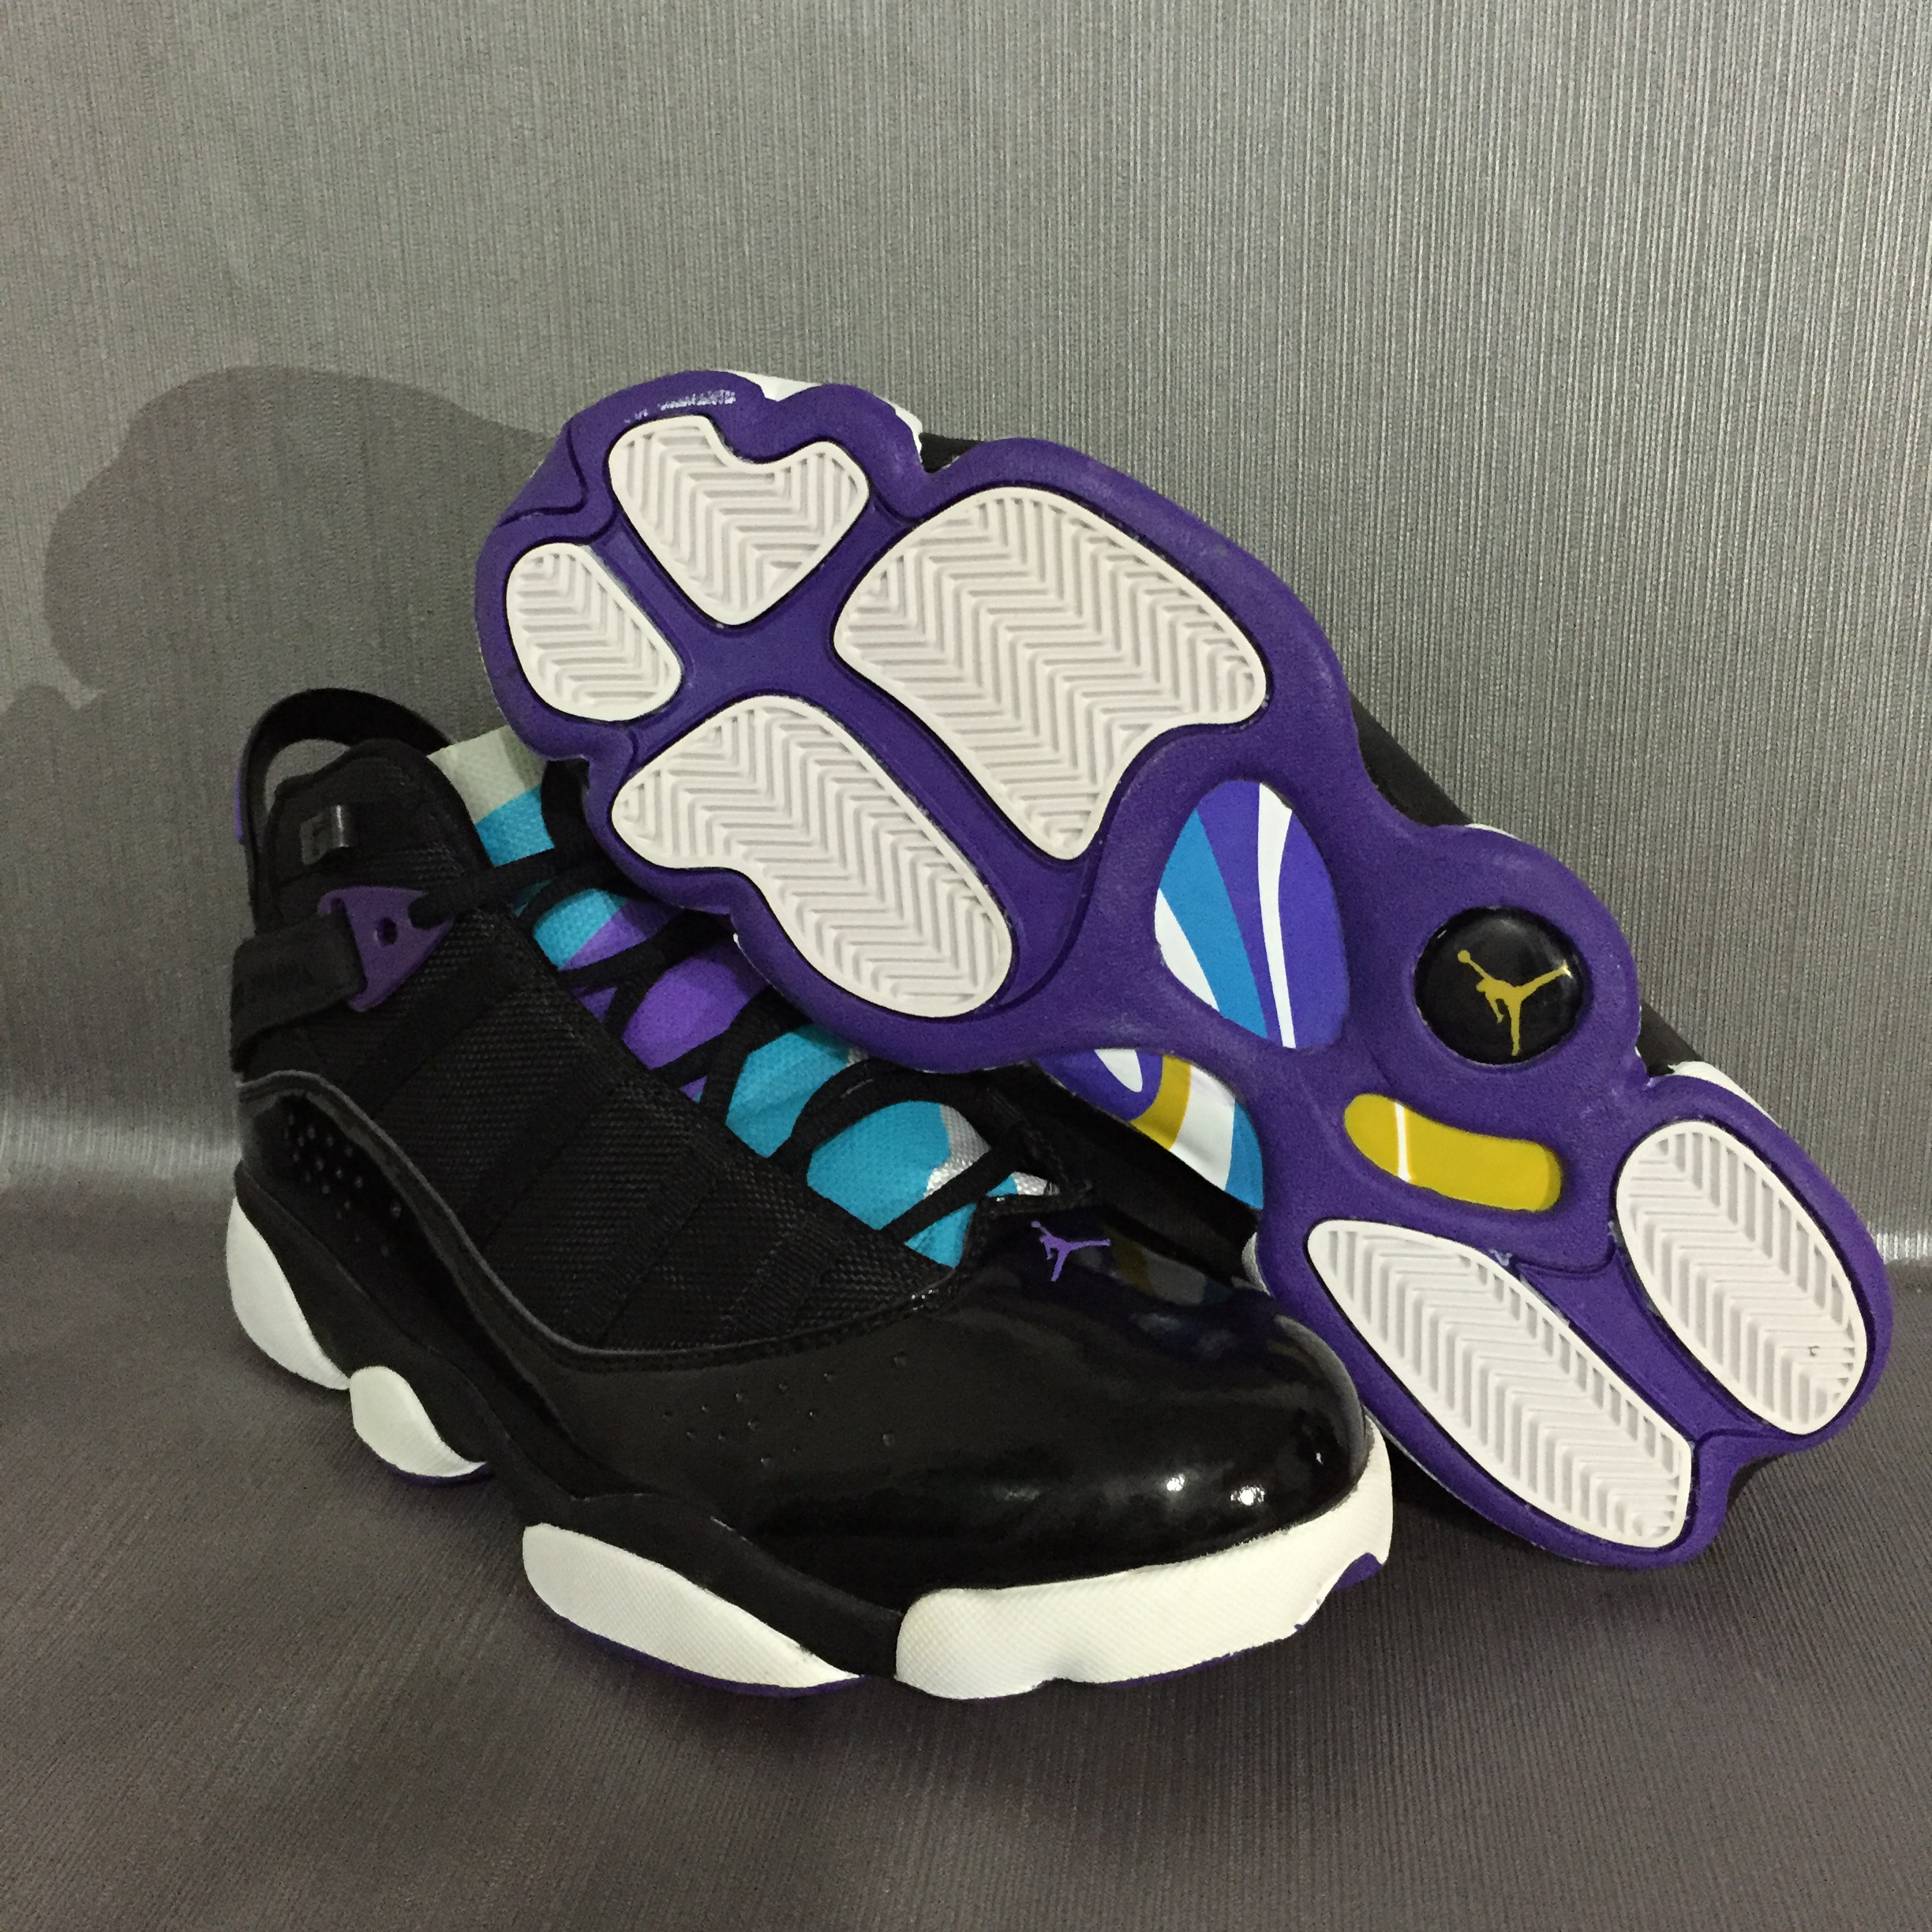 2017 Air Jordan 6 Rings Black Purple White Shoes